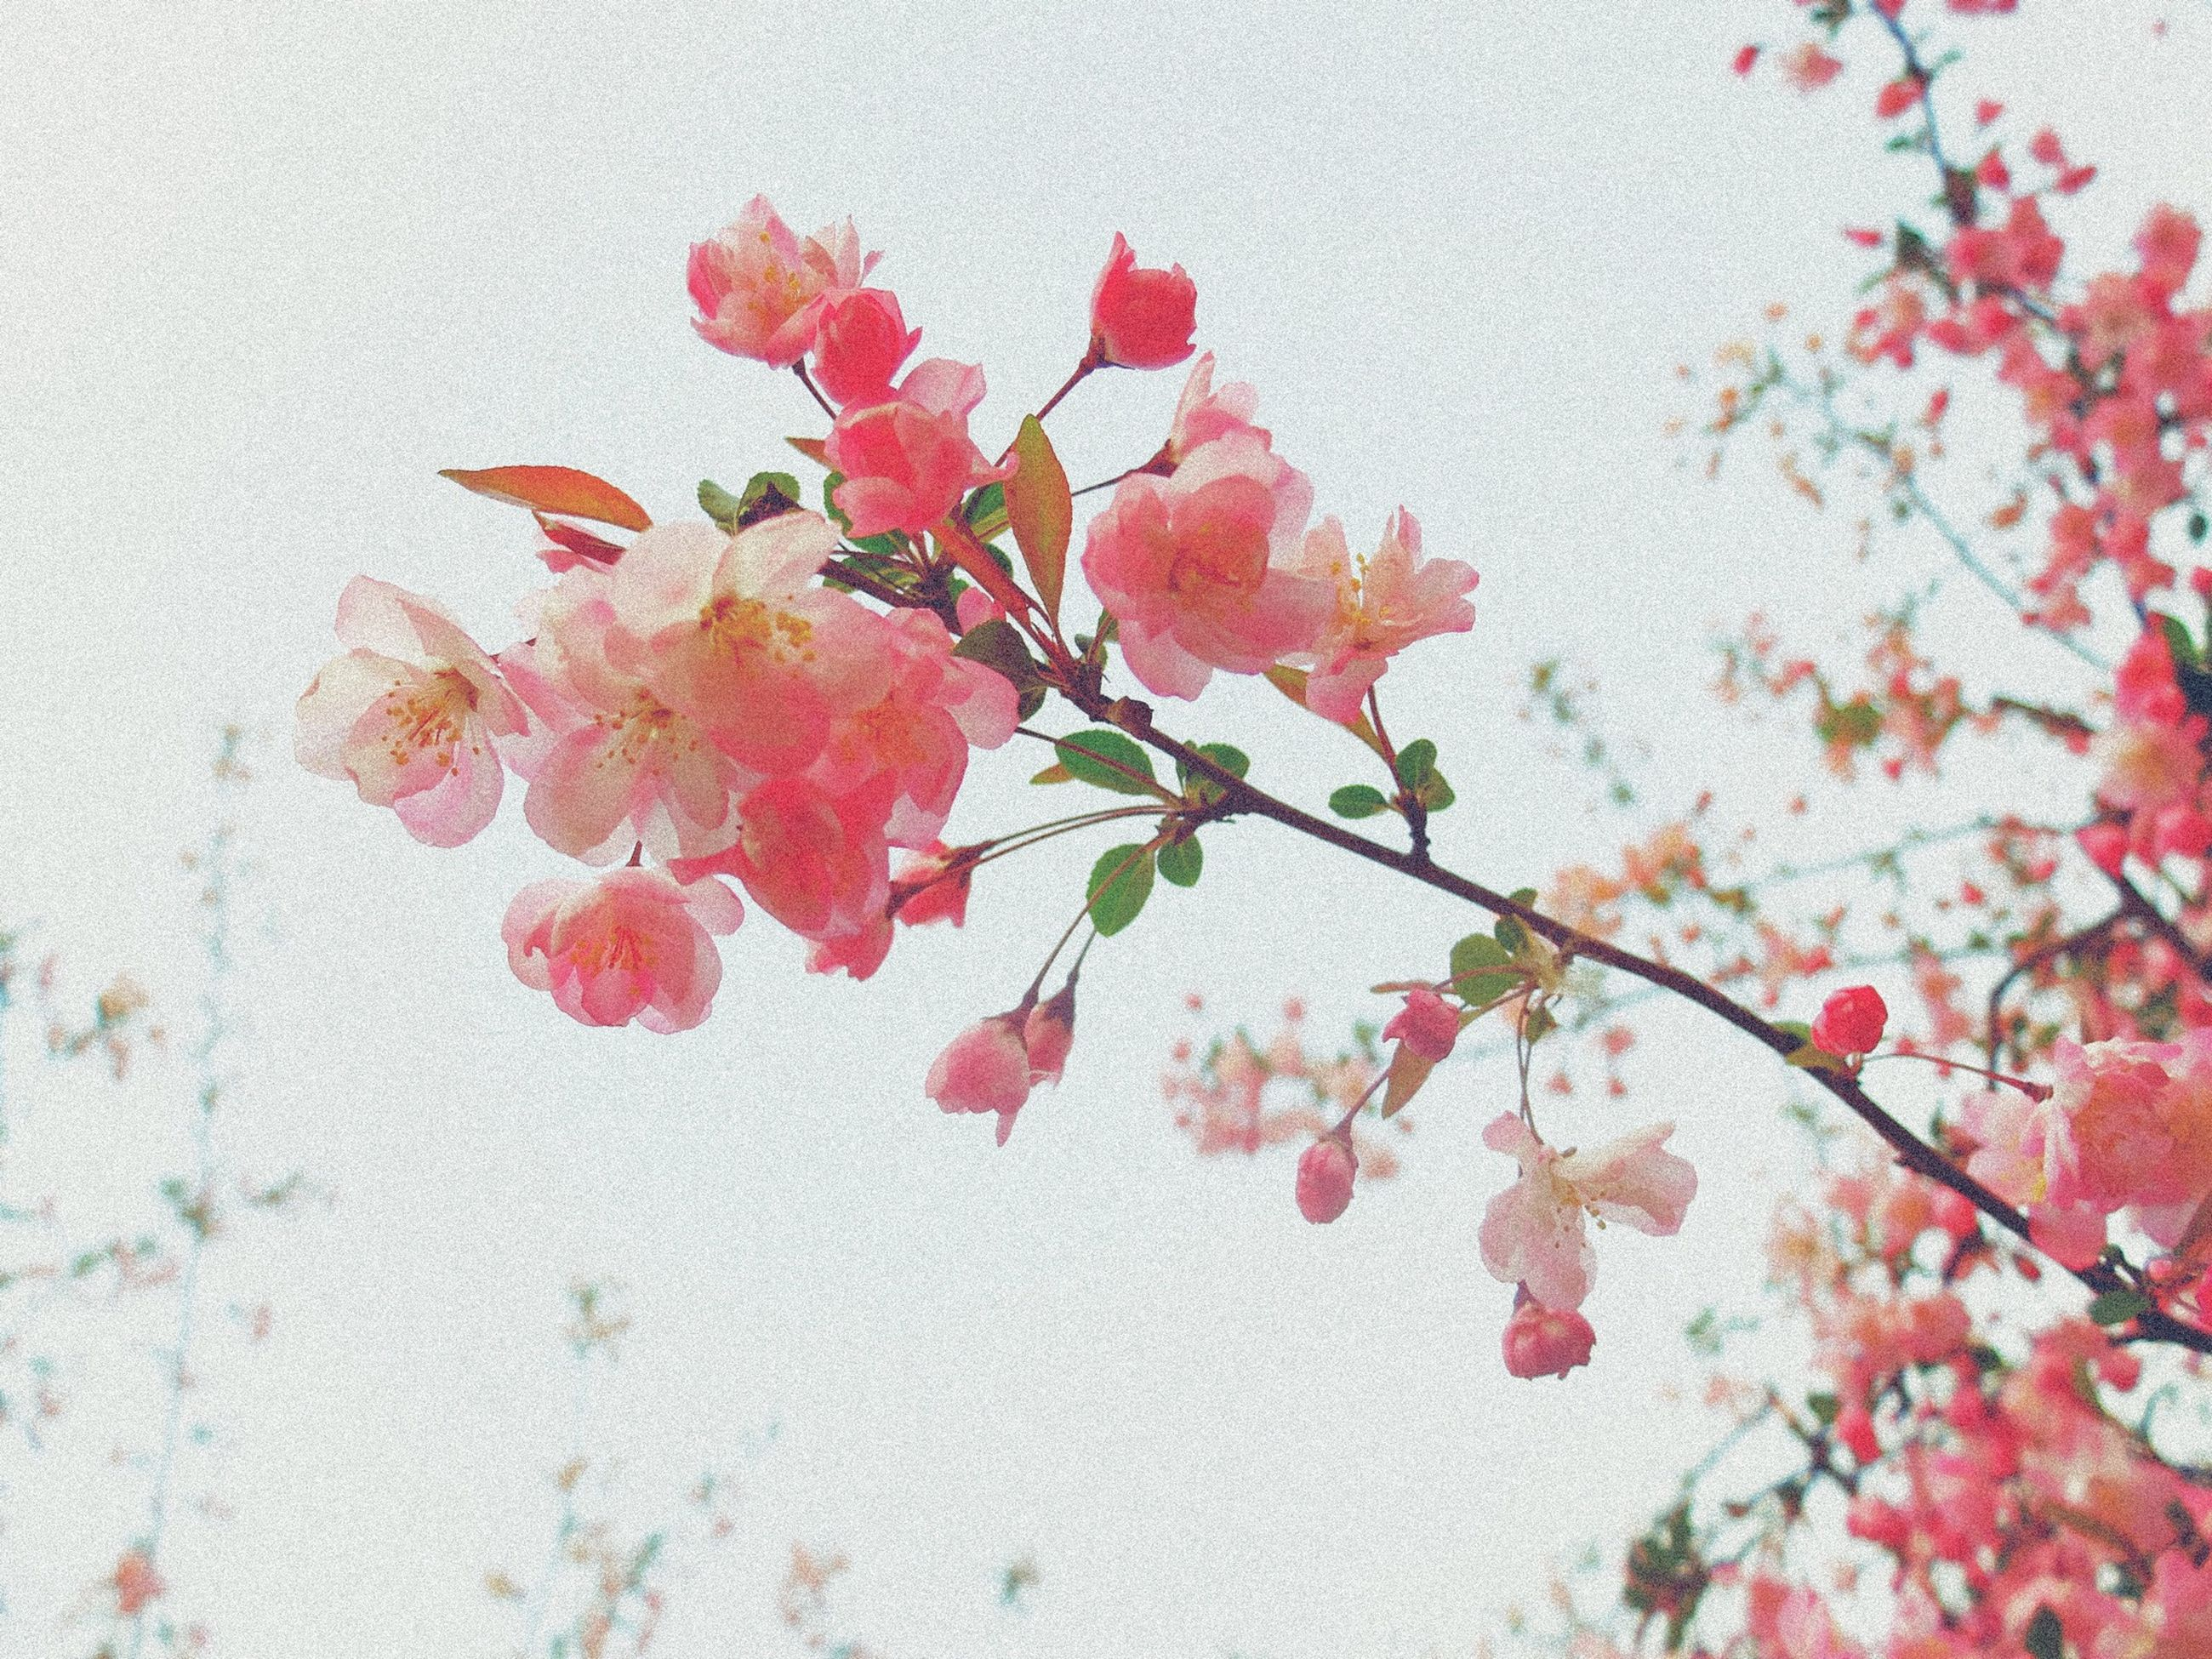 red, flower, growth, branch, freshness, nature, leaf, fragility, beauty in nature, clear sky, plant, tree, season, low angle view, pink color, wall - building feature, day, close-up, twig, no people